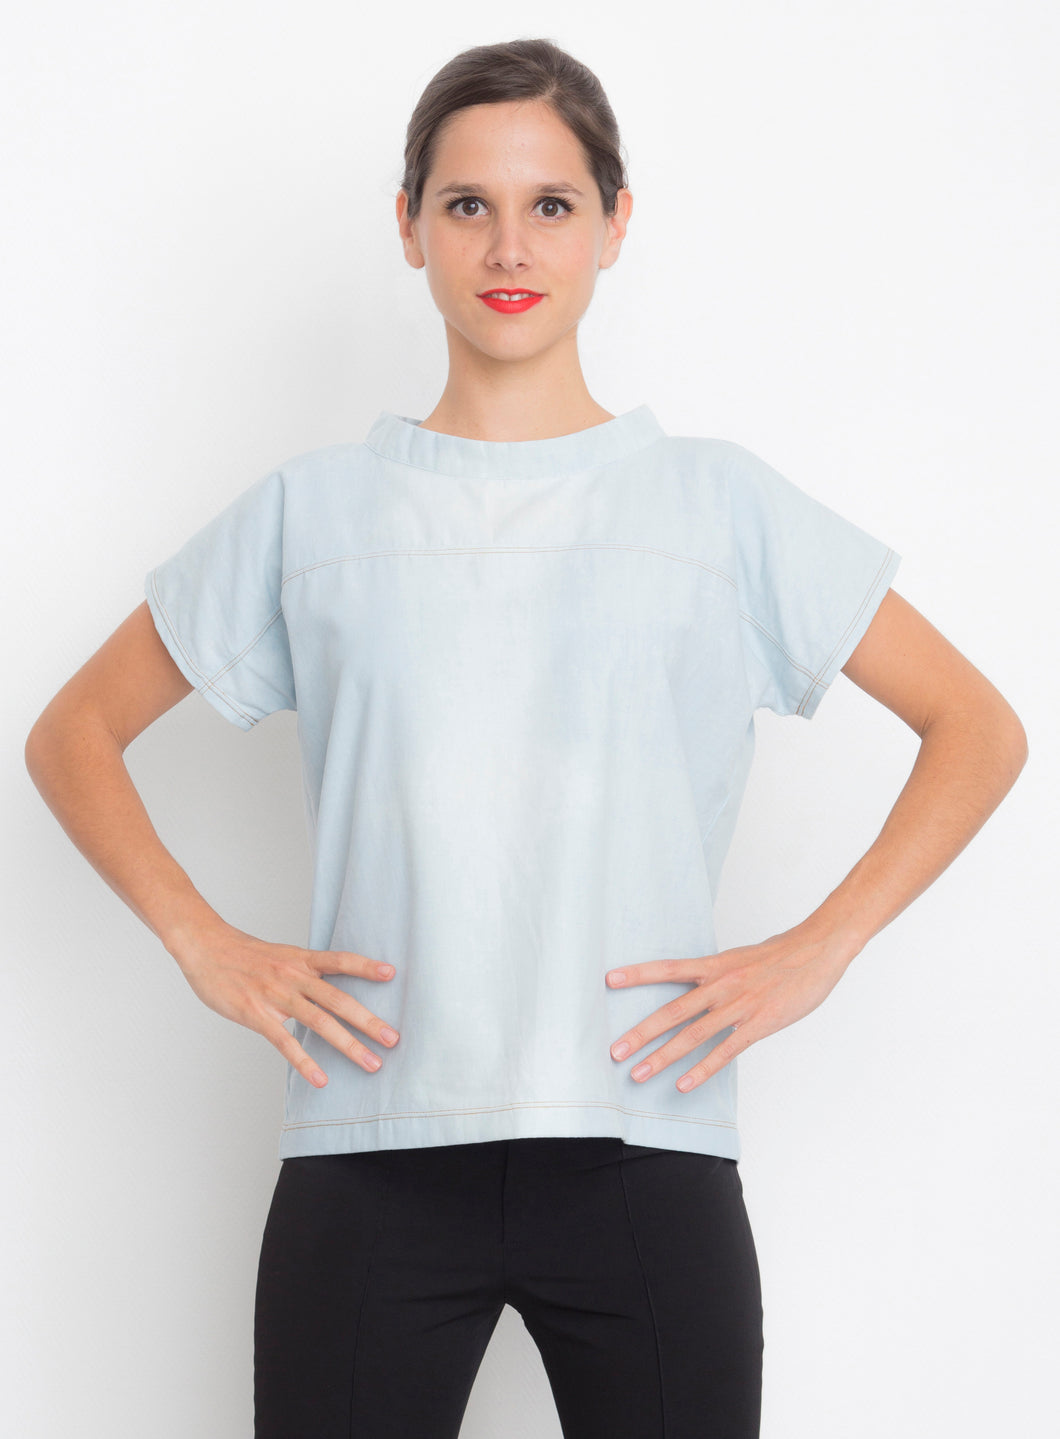 I AM - T-Shirt Sewing Pattern